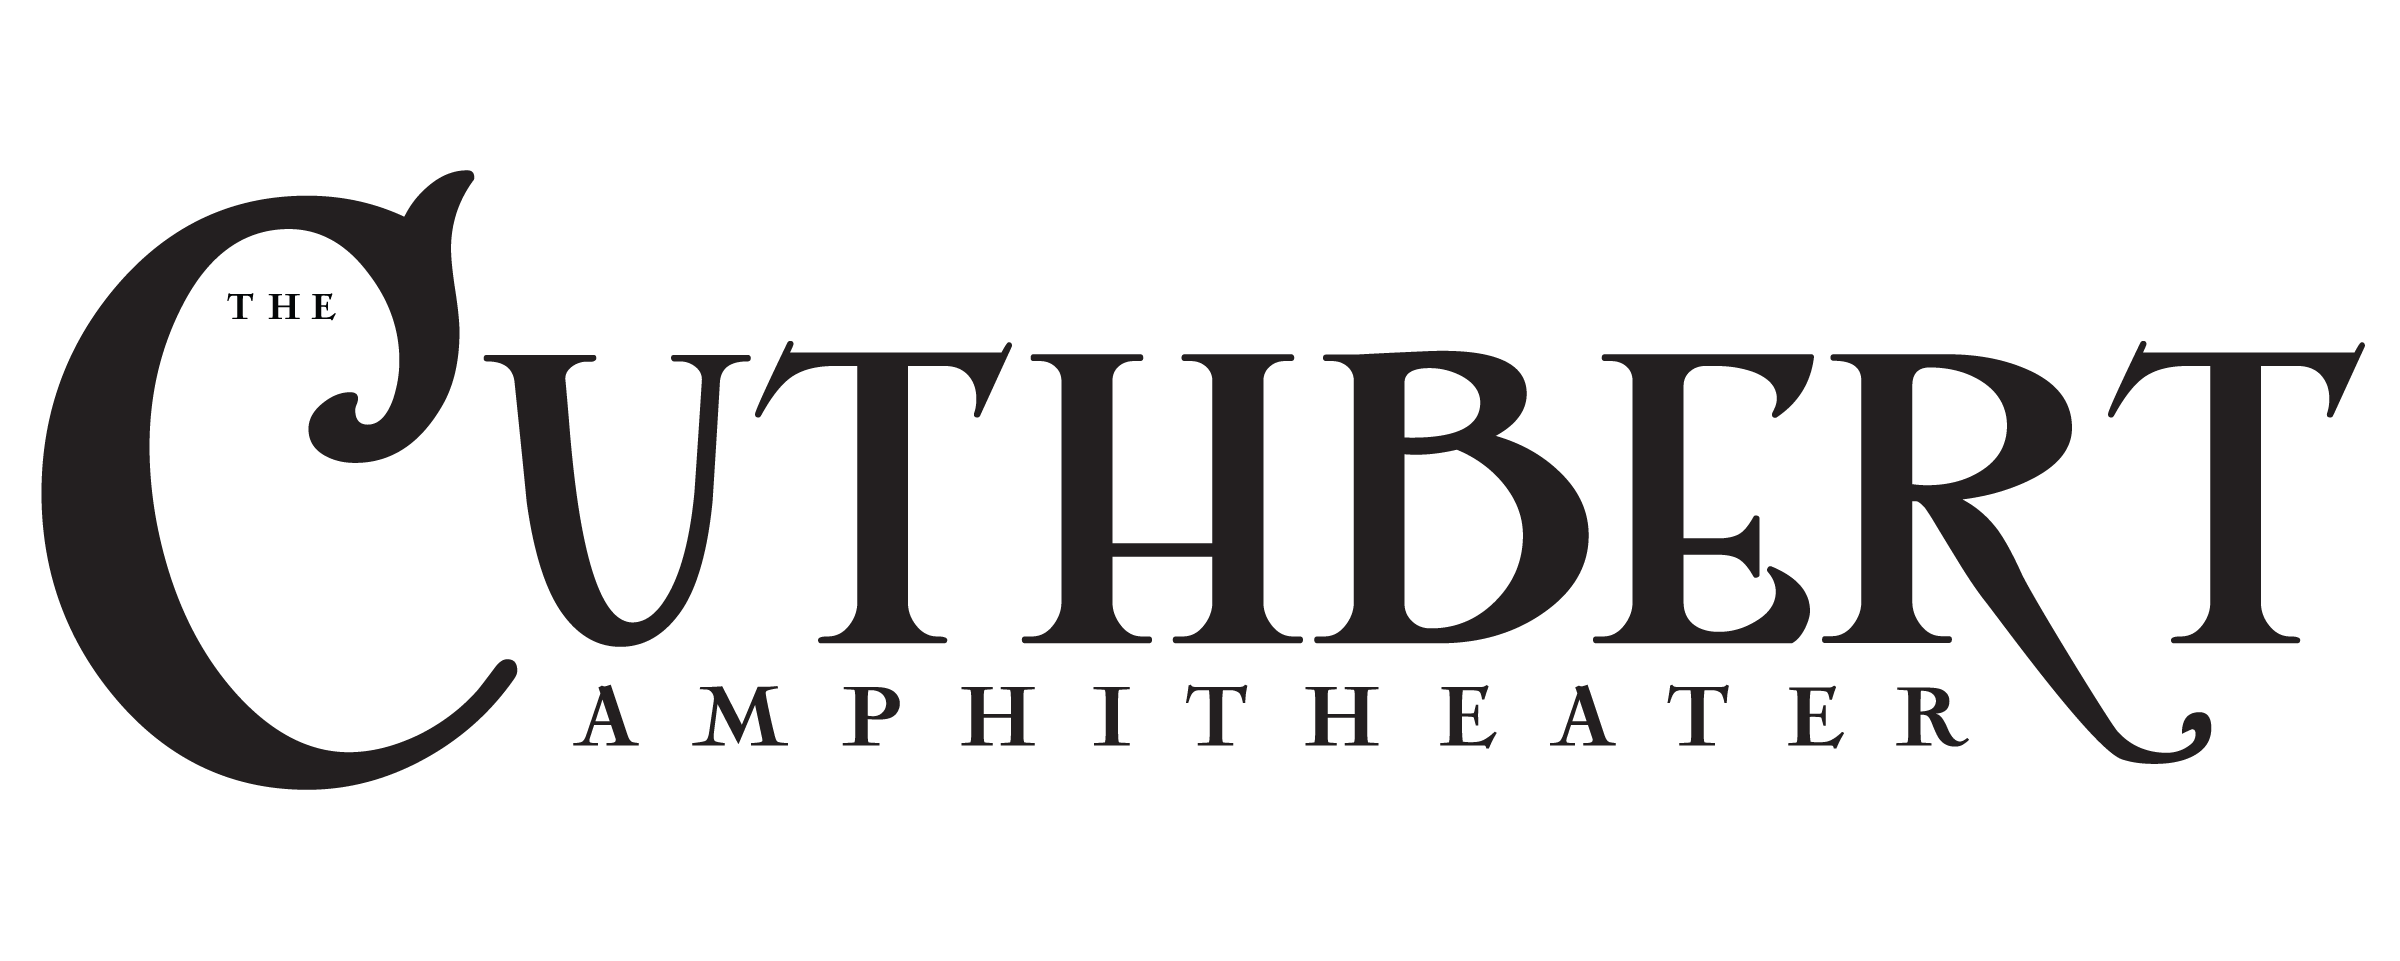 Click for more information about the beautiful Cuthbert Ampihtheater